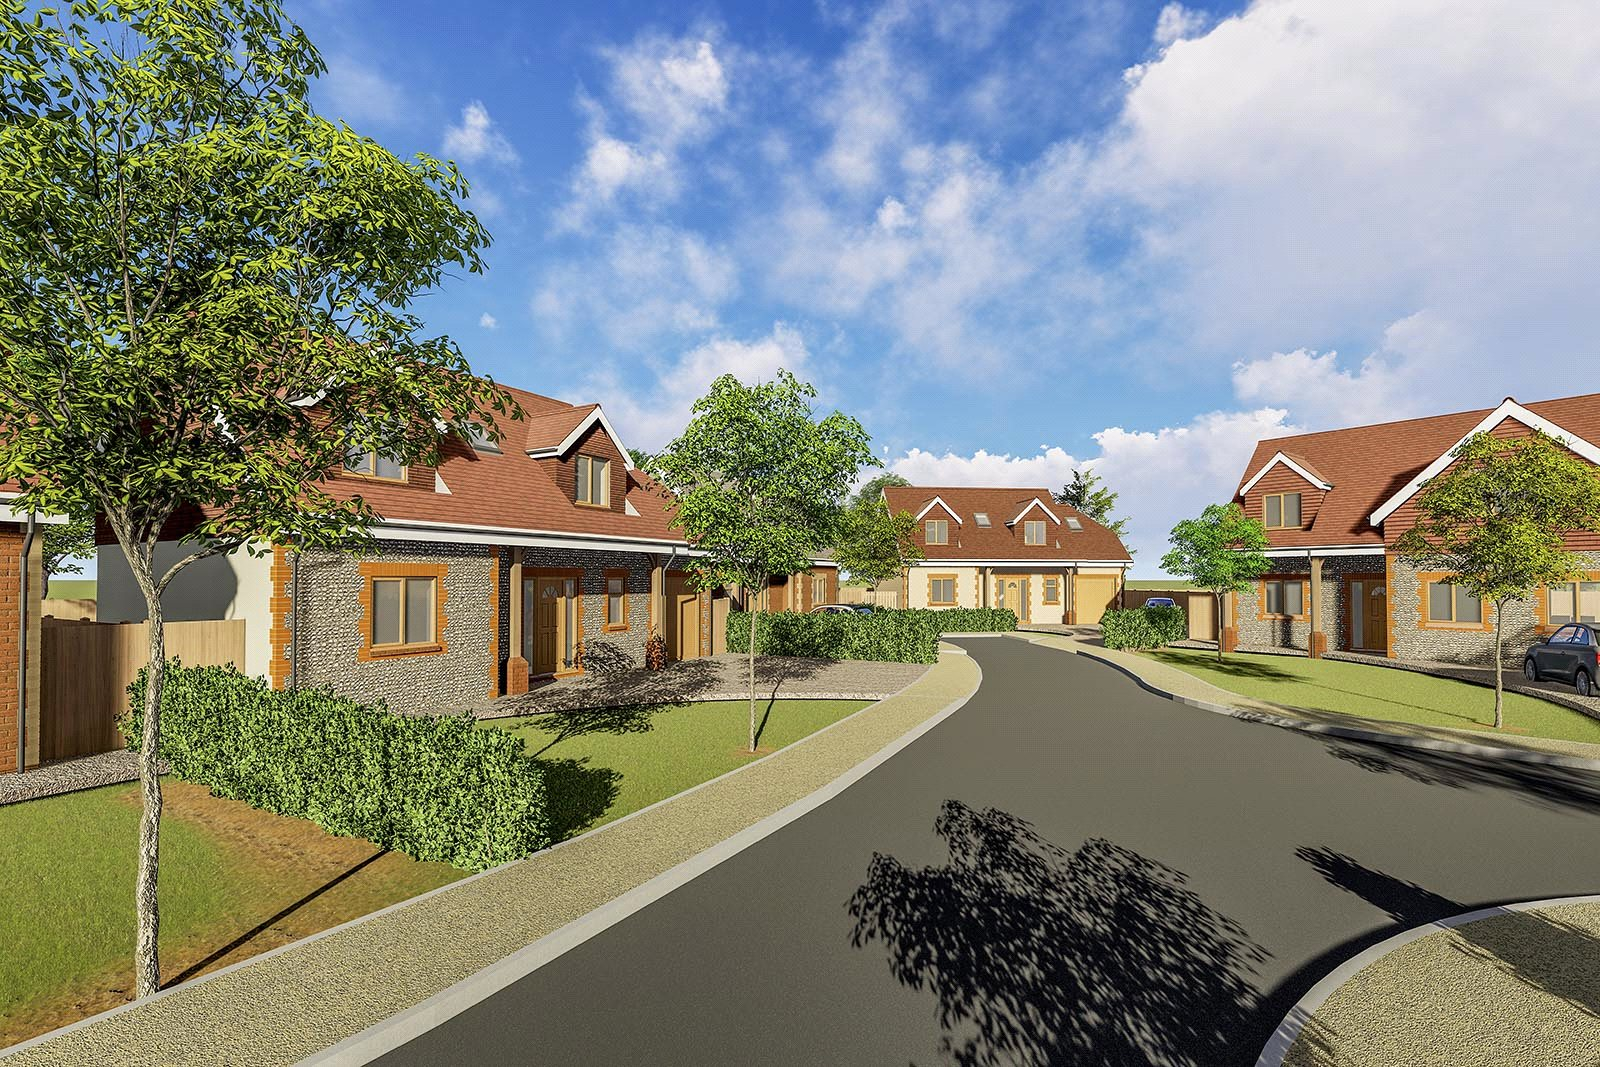 4 bed house for sale in Swallows Gate, Dappers Lane, Angmering 4